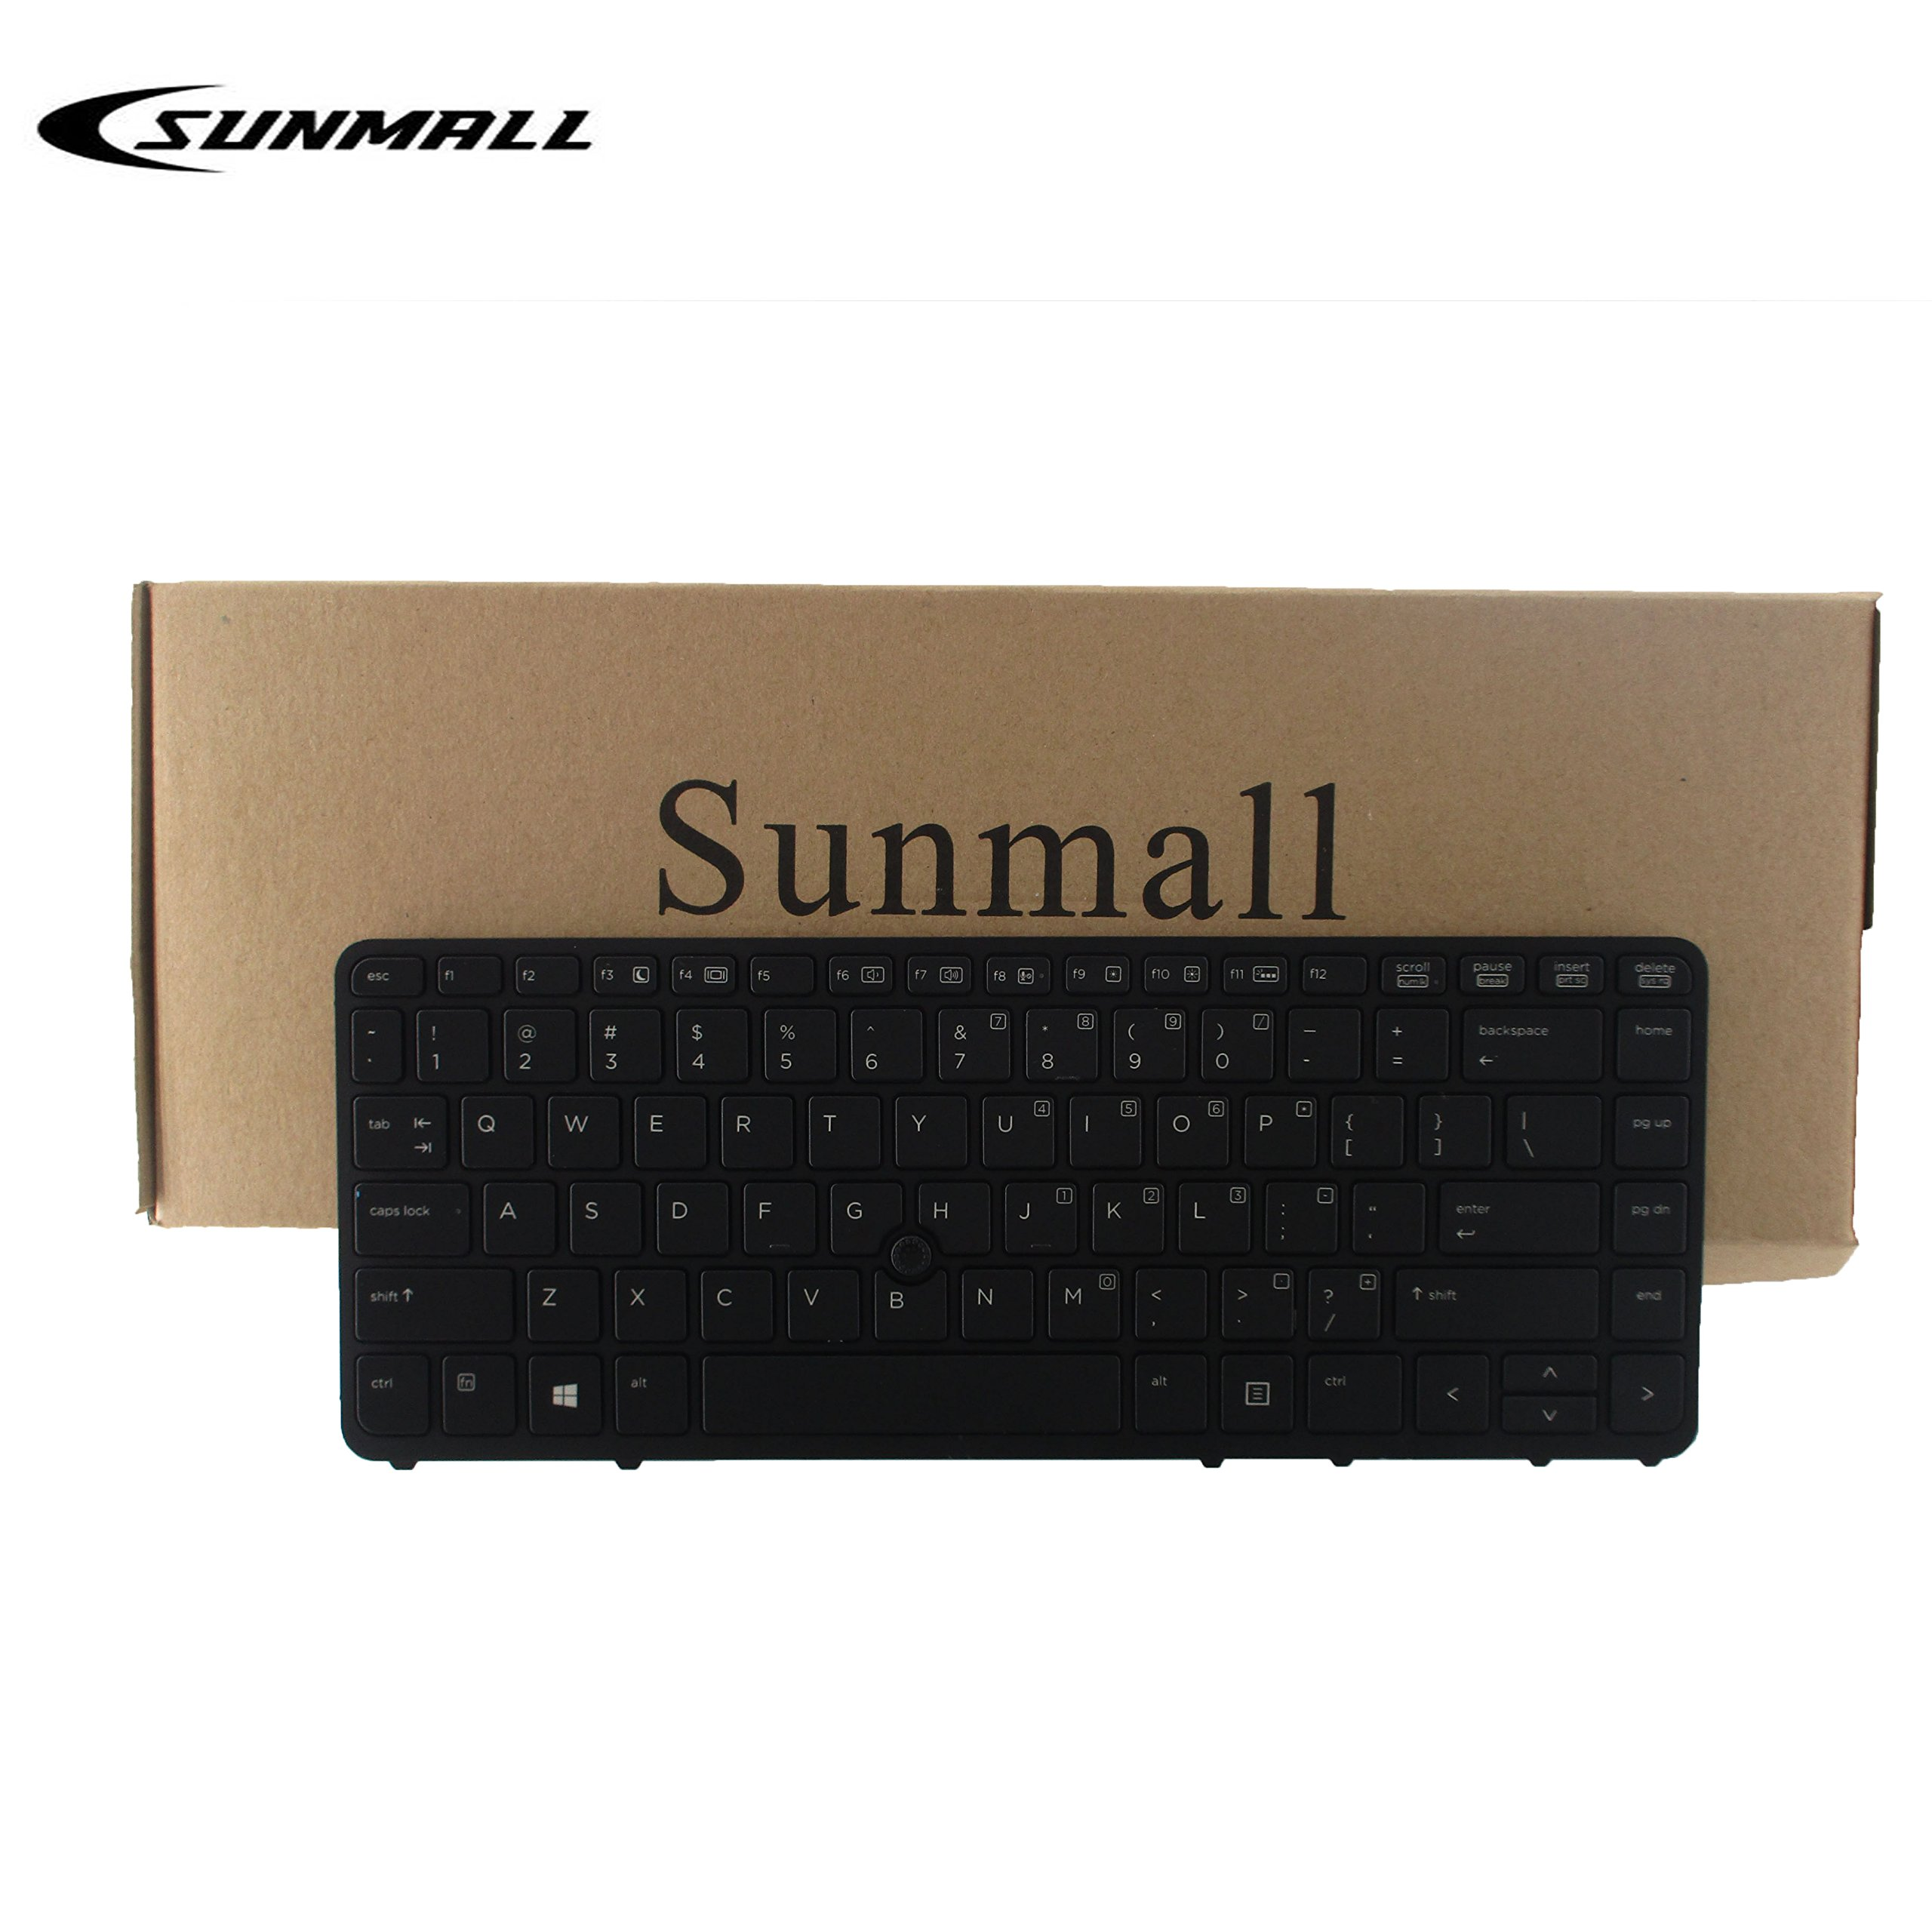 SUNMALL Laptop Keyboard Replacement with Pointer and Backlight for HP EliteBook 840 G1 G2/850 G1 G2/745 G1 G2/HP ZBook 14 Series Laptop Black US Layout (6 Month warrant)